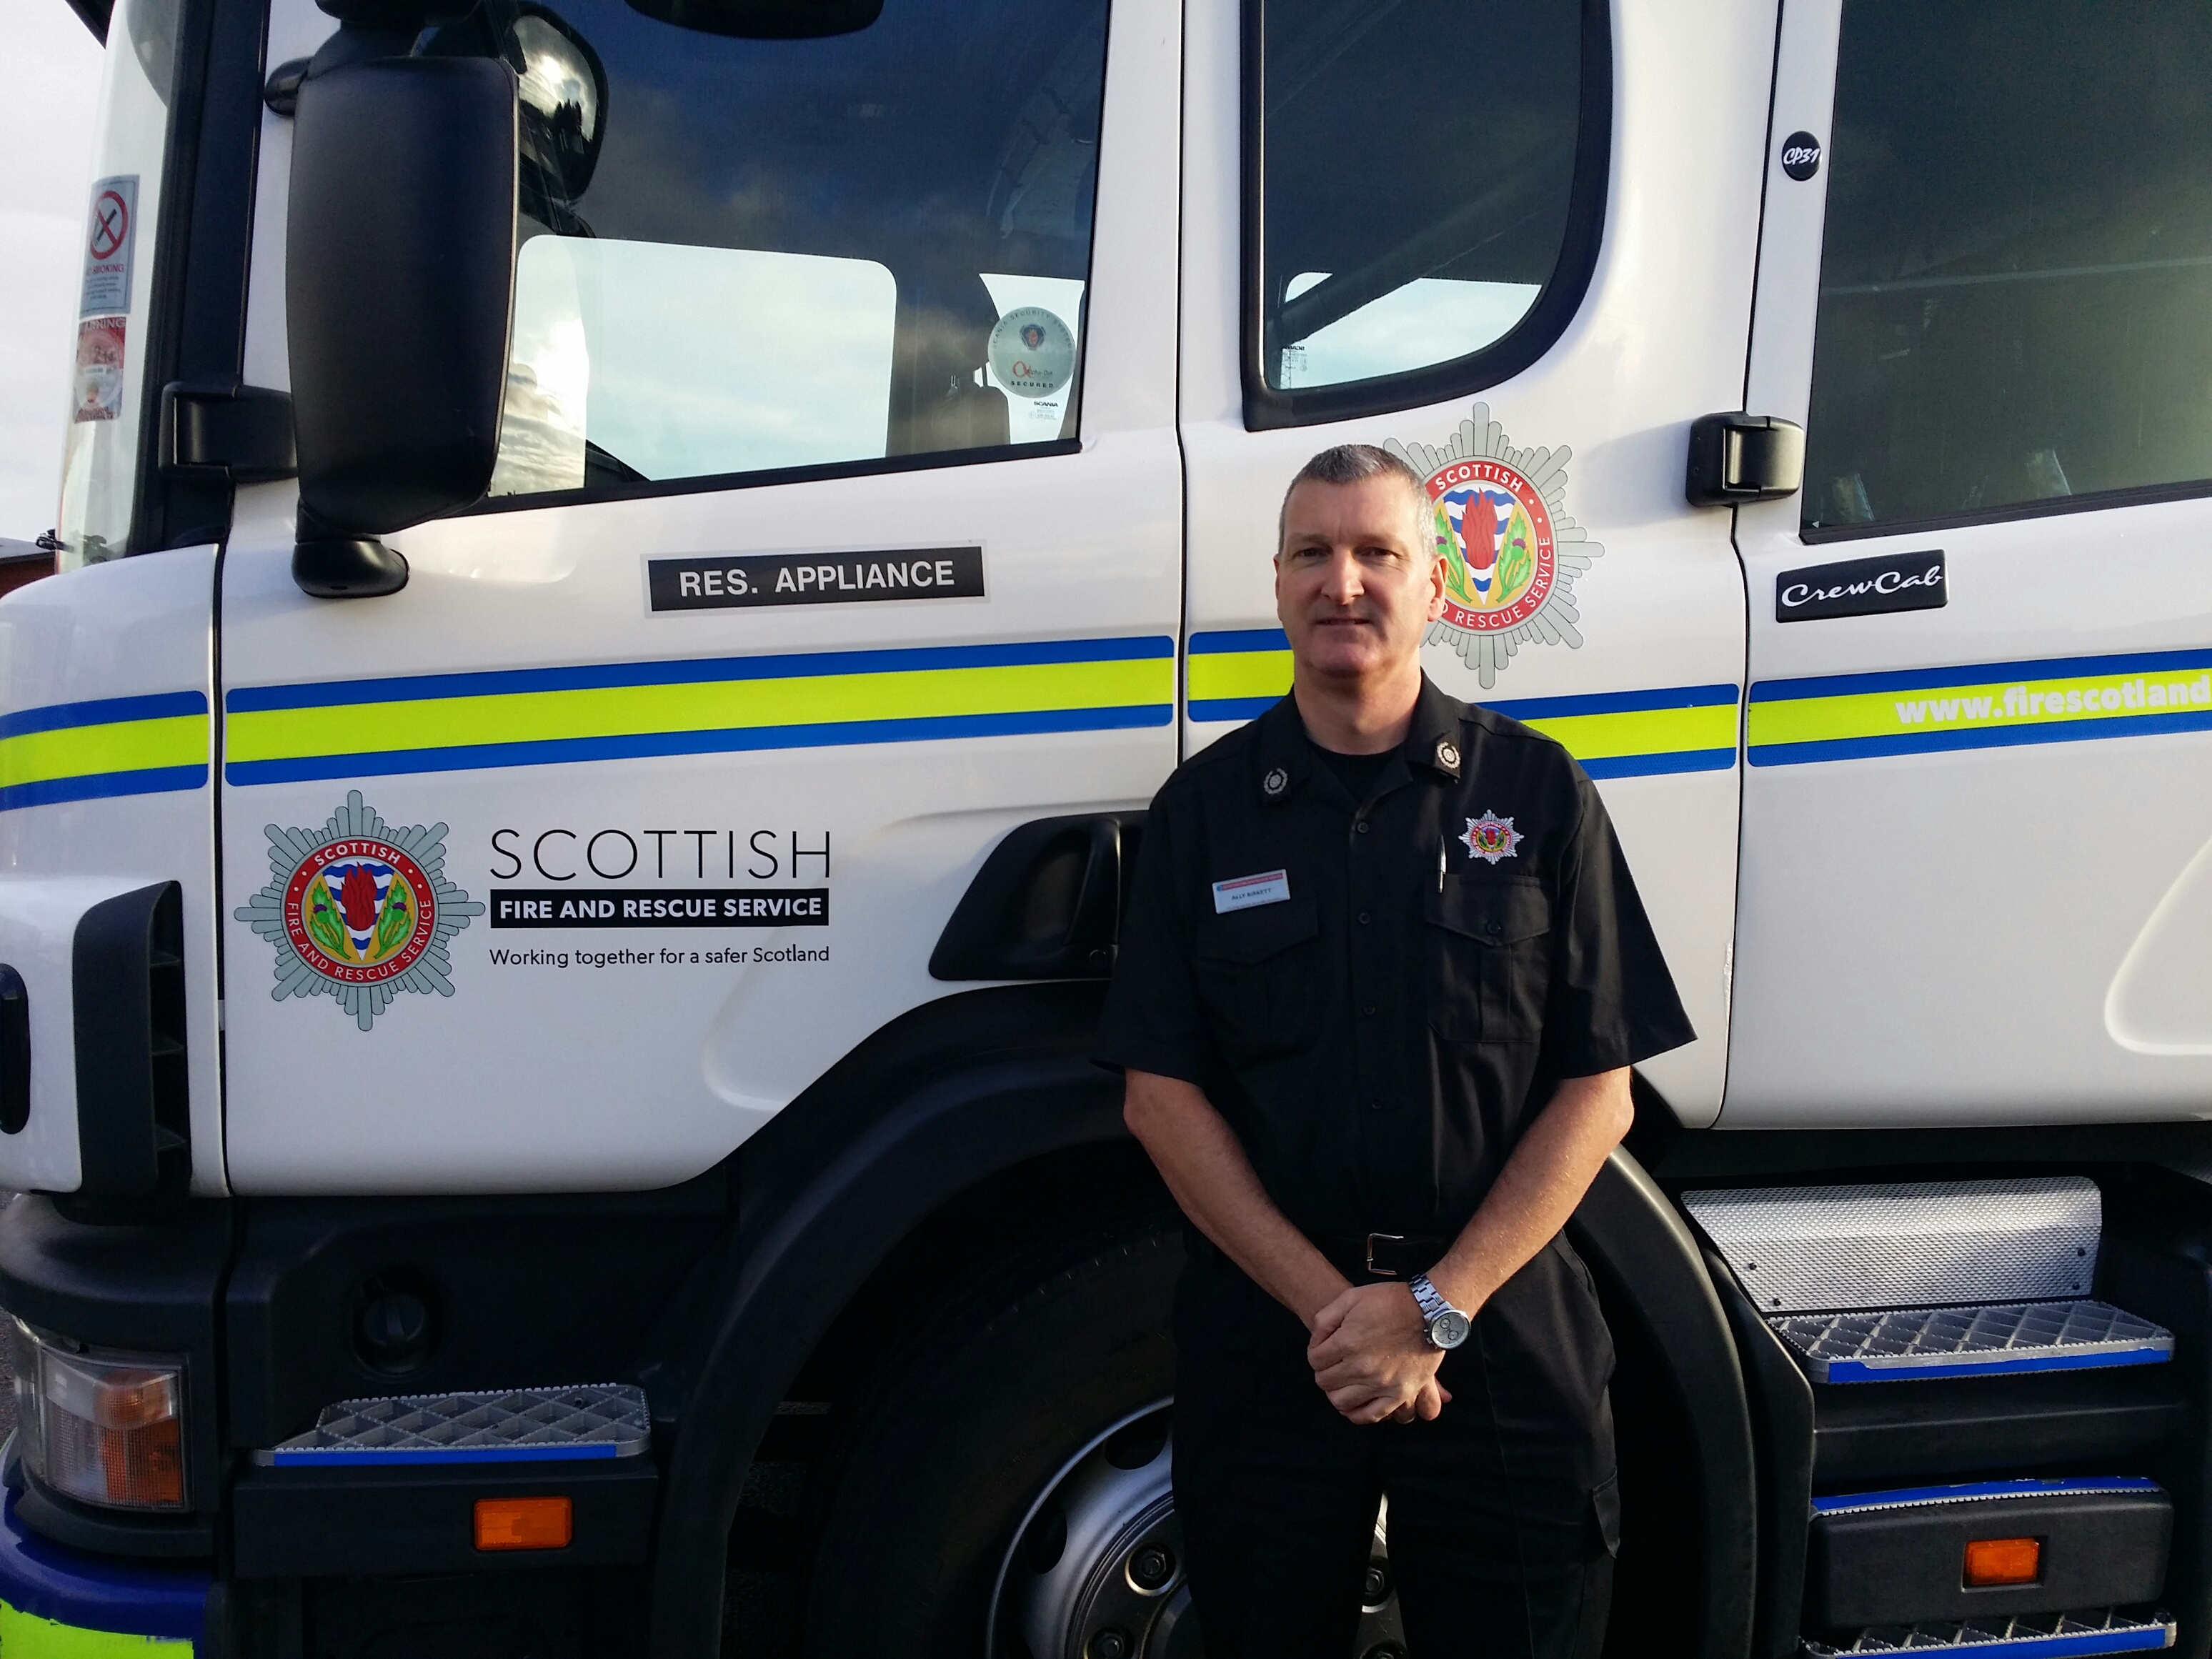 North firefighter nominated for prestigious Firefighters' Charity award